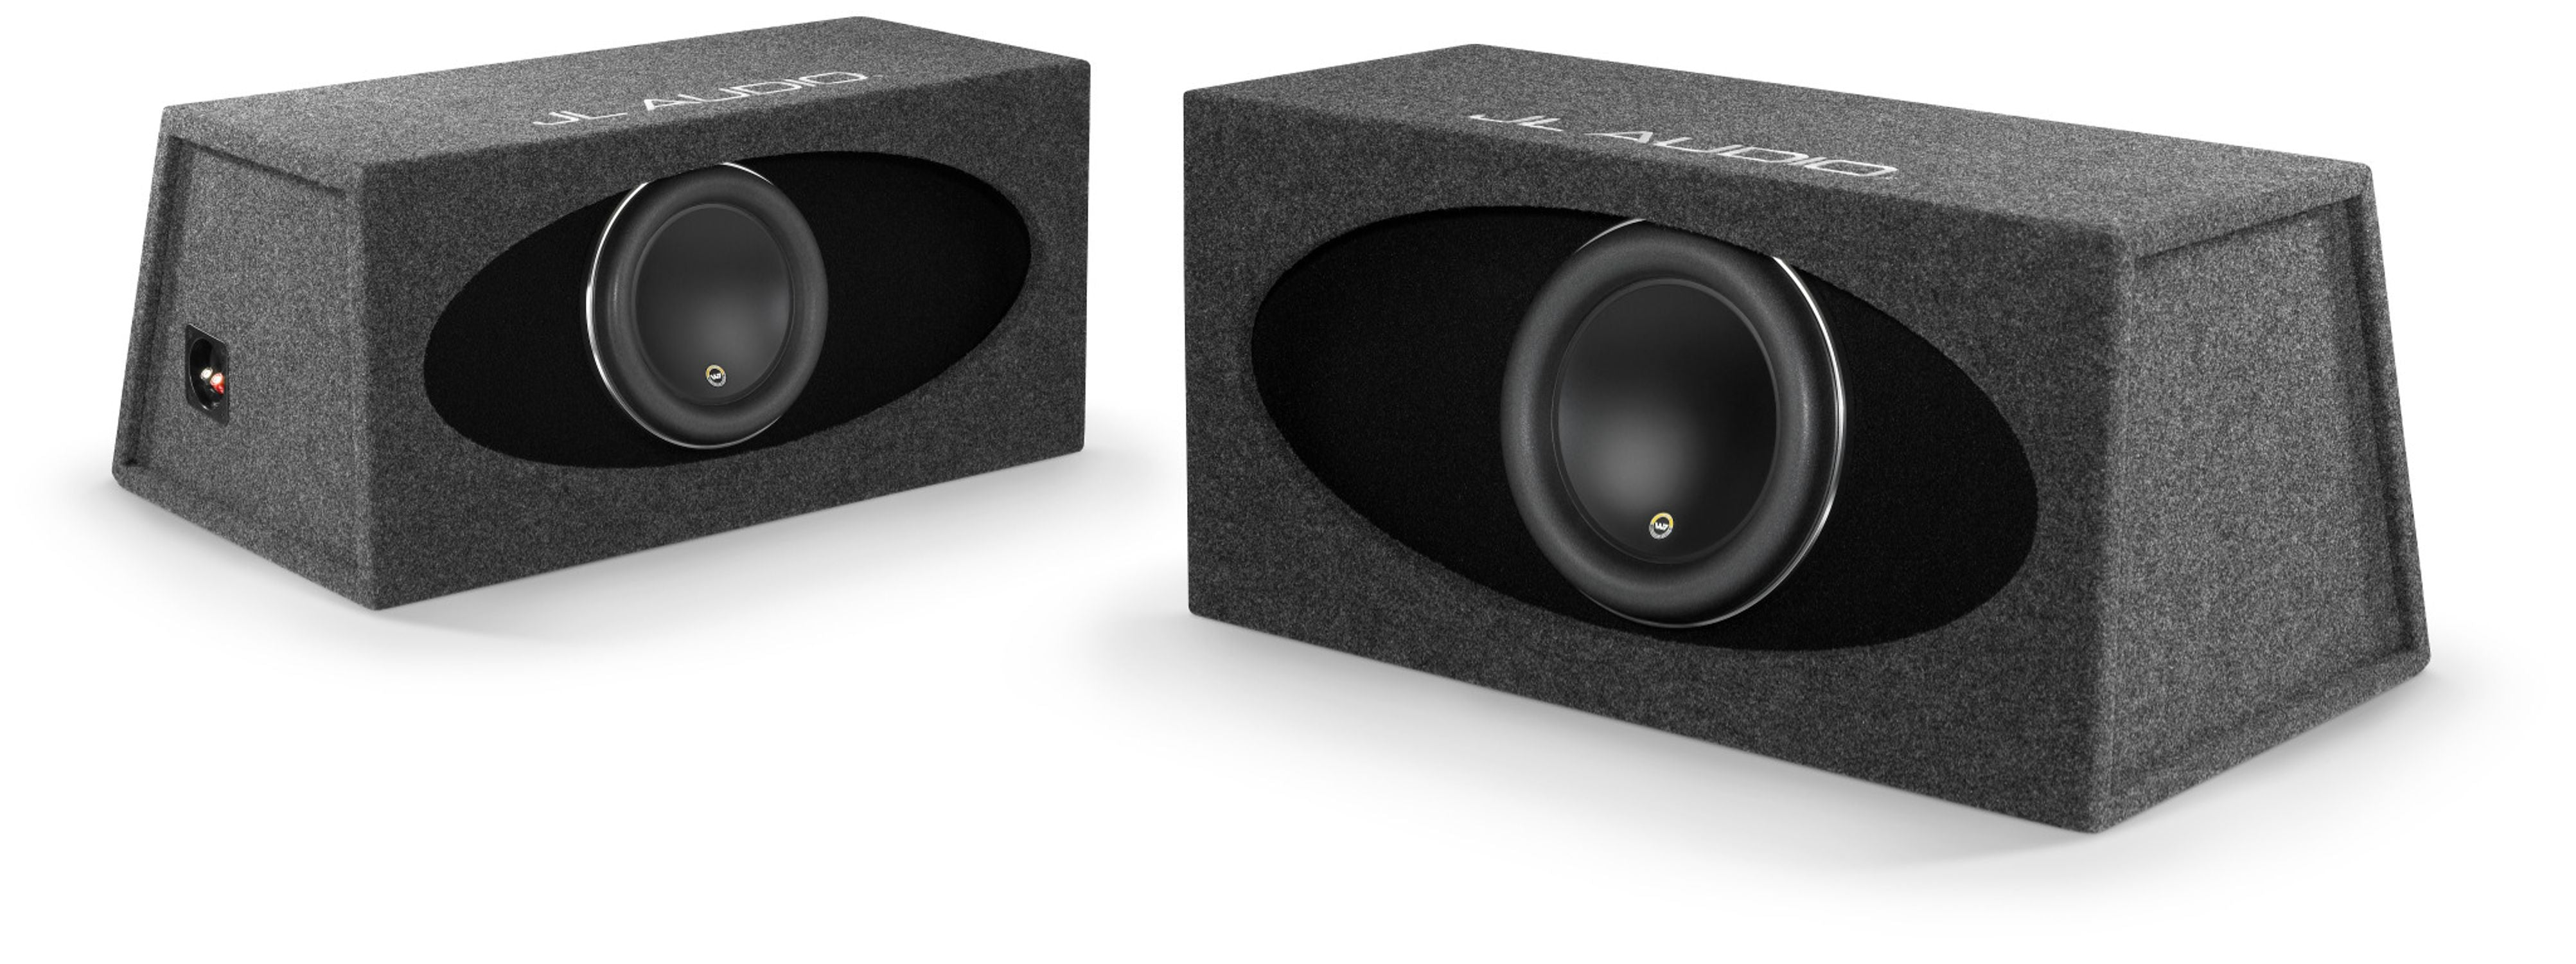 HO112R-W7AE Enclosed Subwoofer Pair Showing Front and Rear